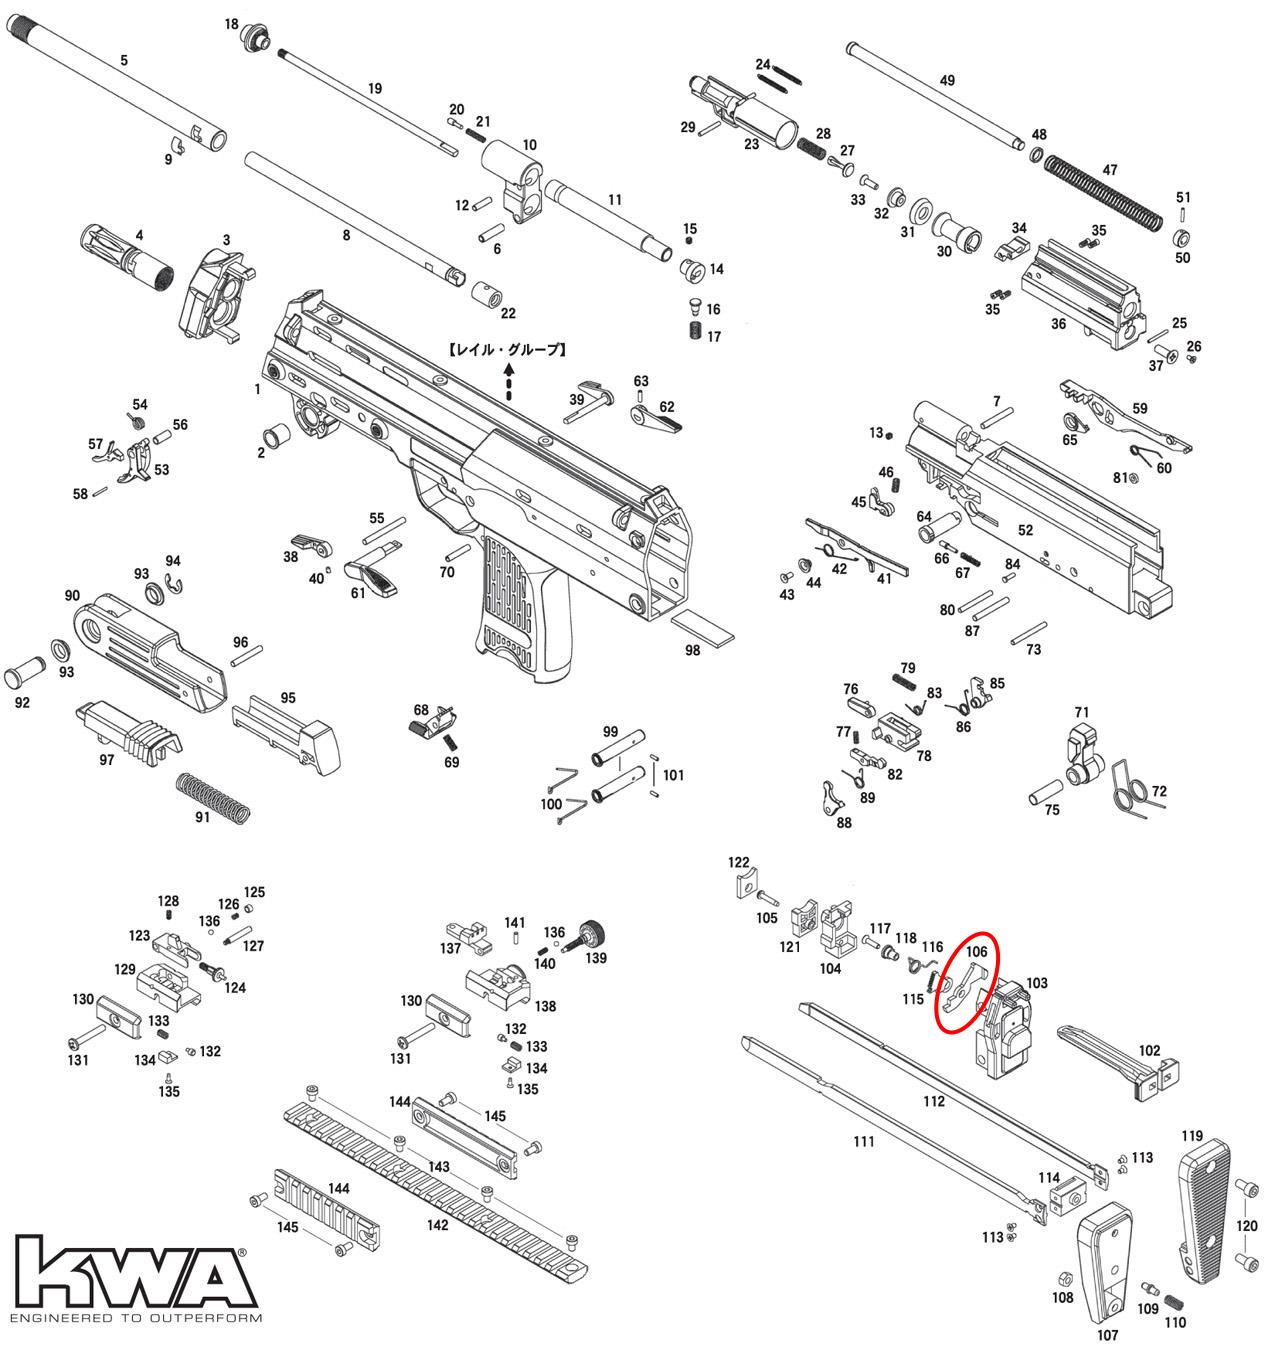 Kwa Mp7 Exploded Diagram Main Ksc Part Original